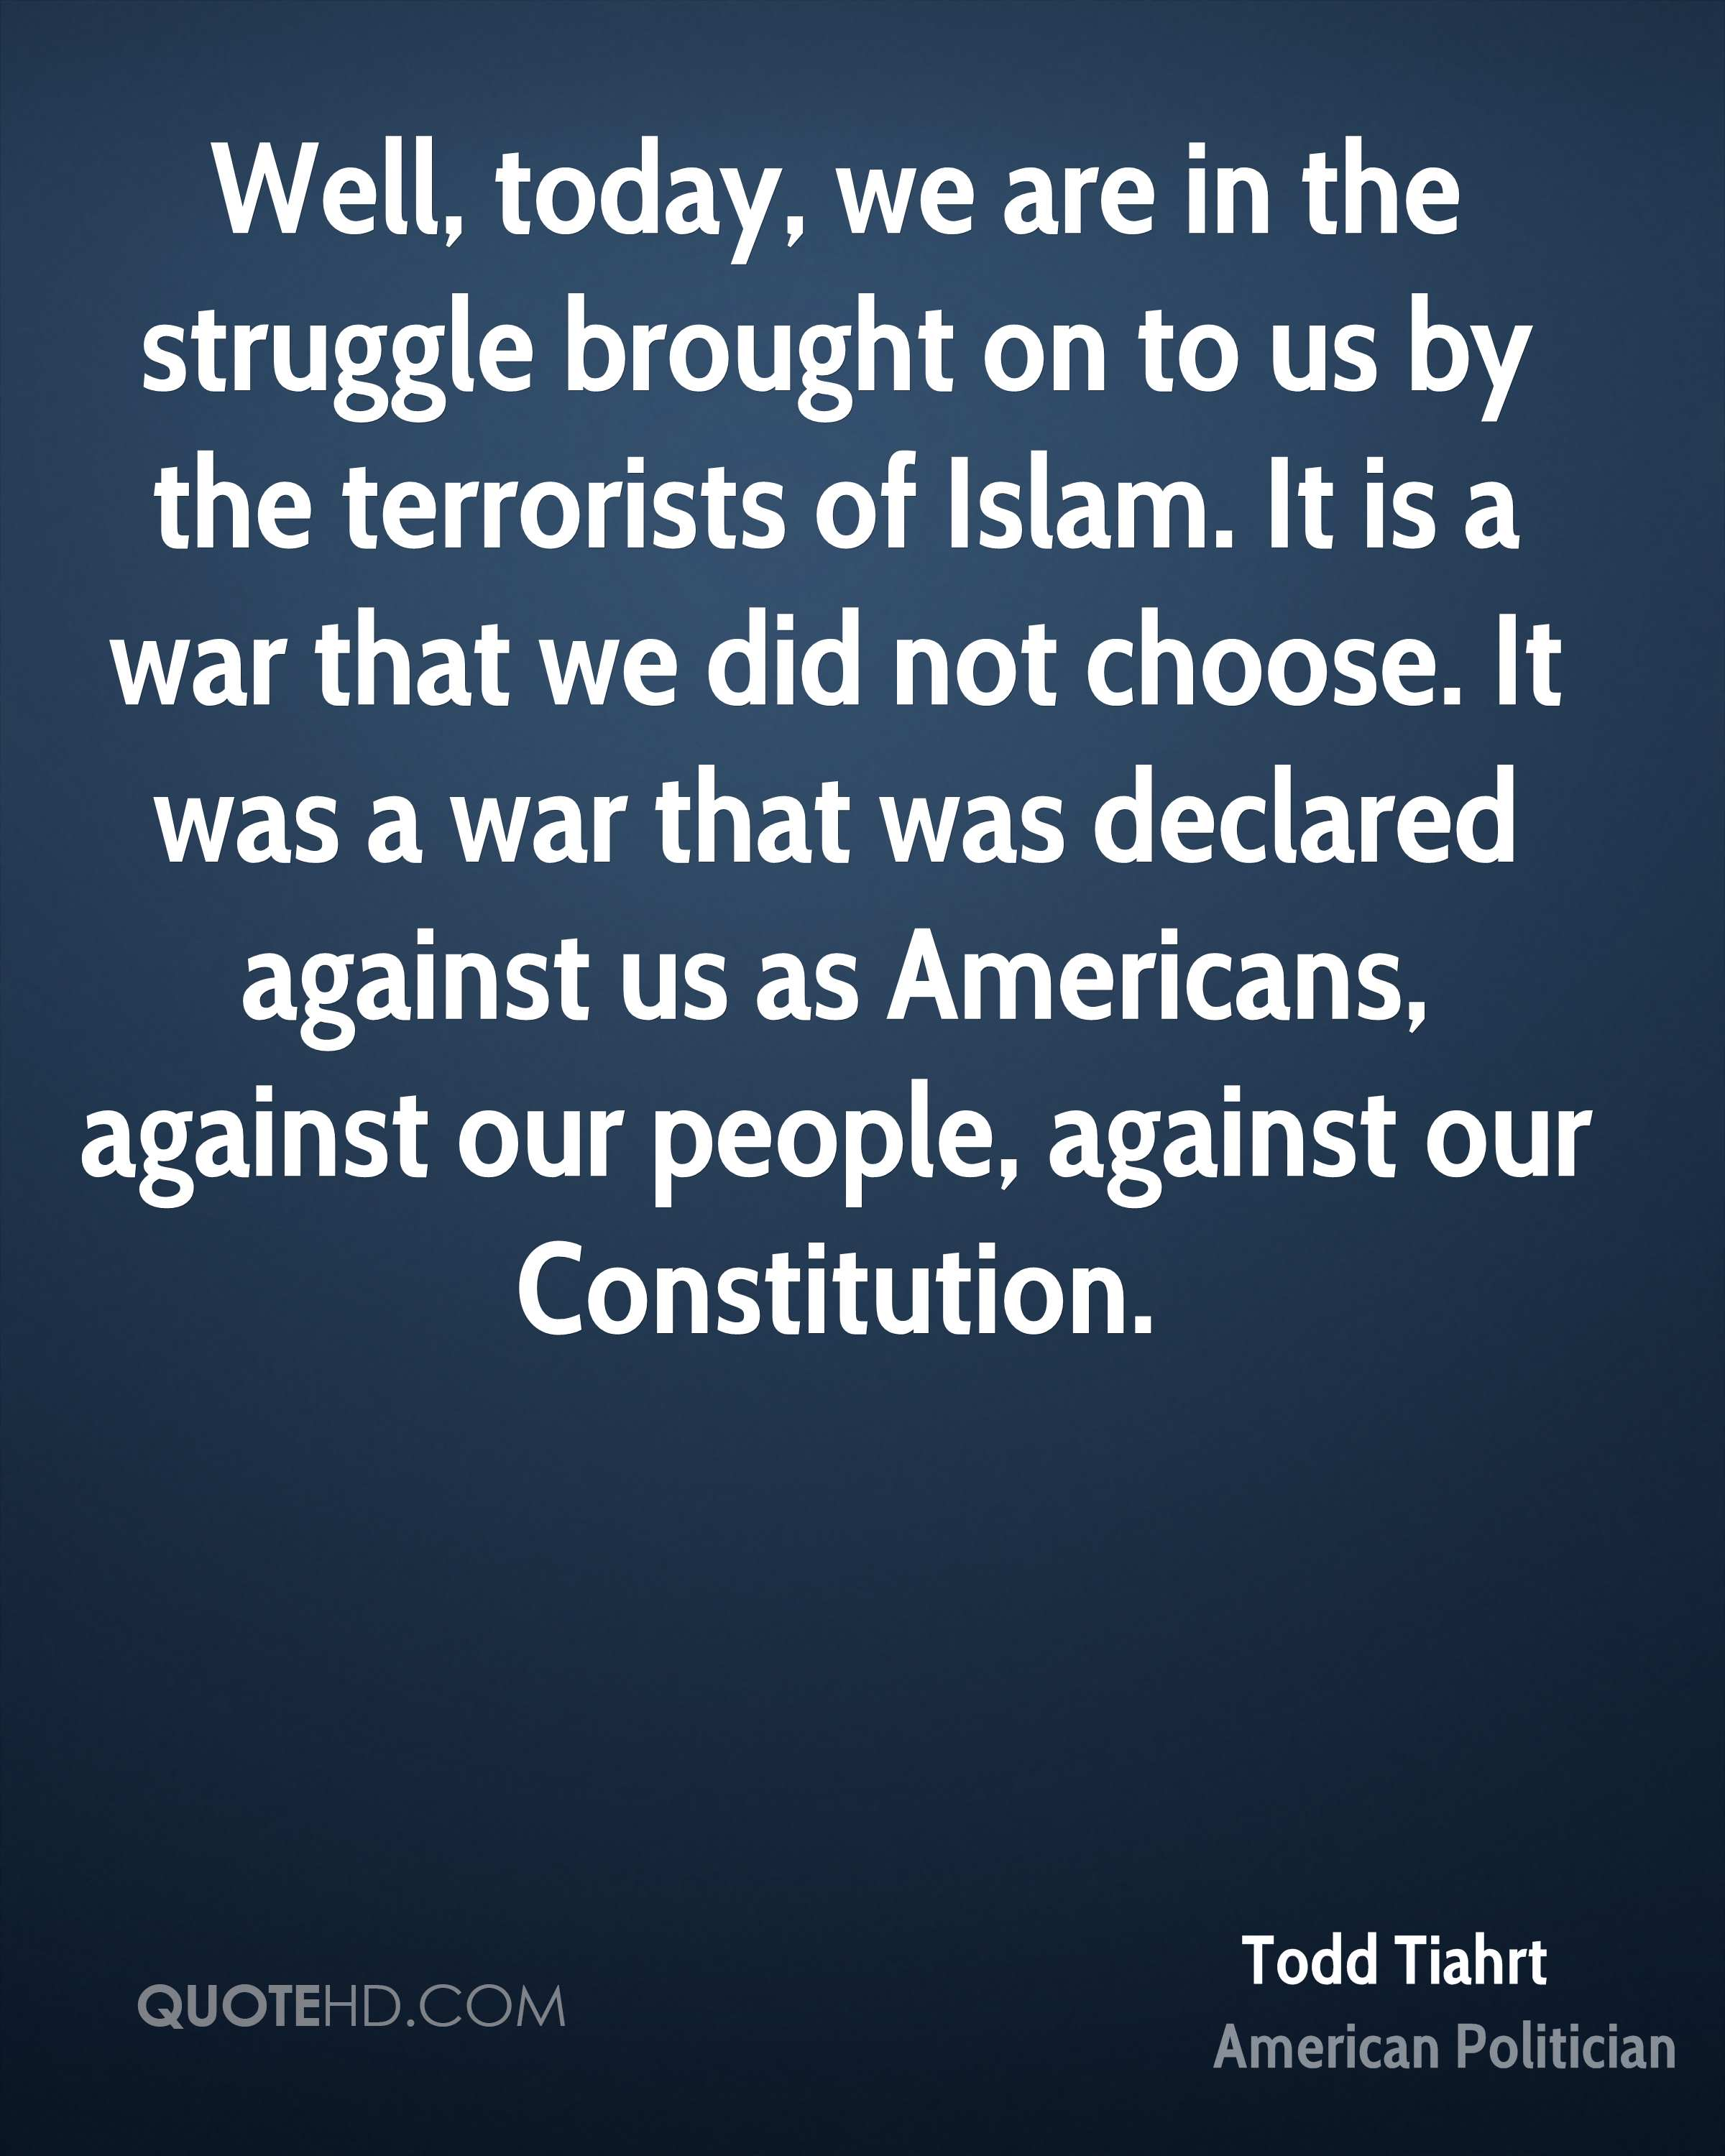 Well, today, we are in the struggle brought on to us by the terrorists of Islam. It is a war that we did not choose. It was a war that was declared against us as Americans, against our people, against our Constitution.